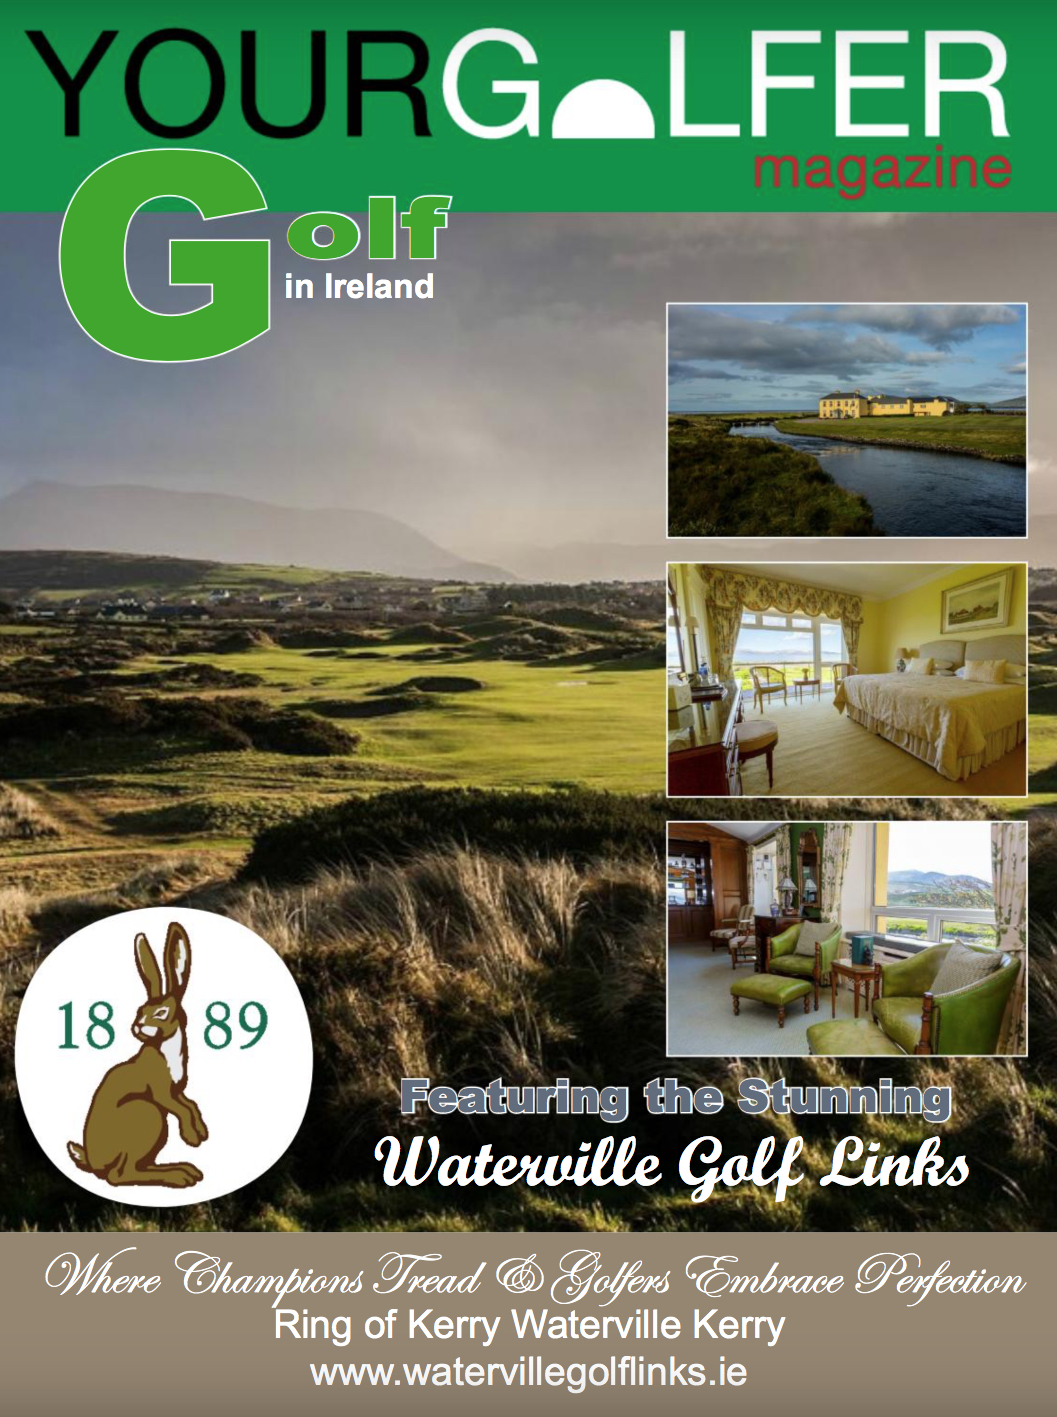 golf in ireland special edition Your Golfer Magazine